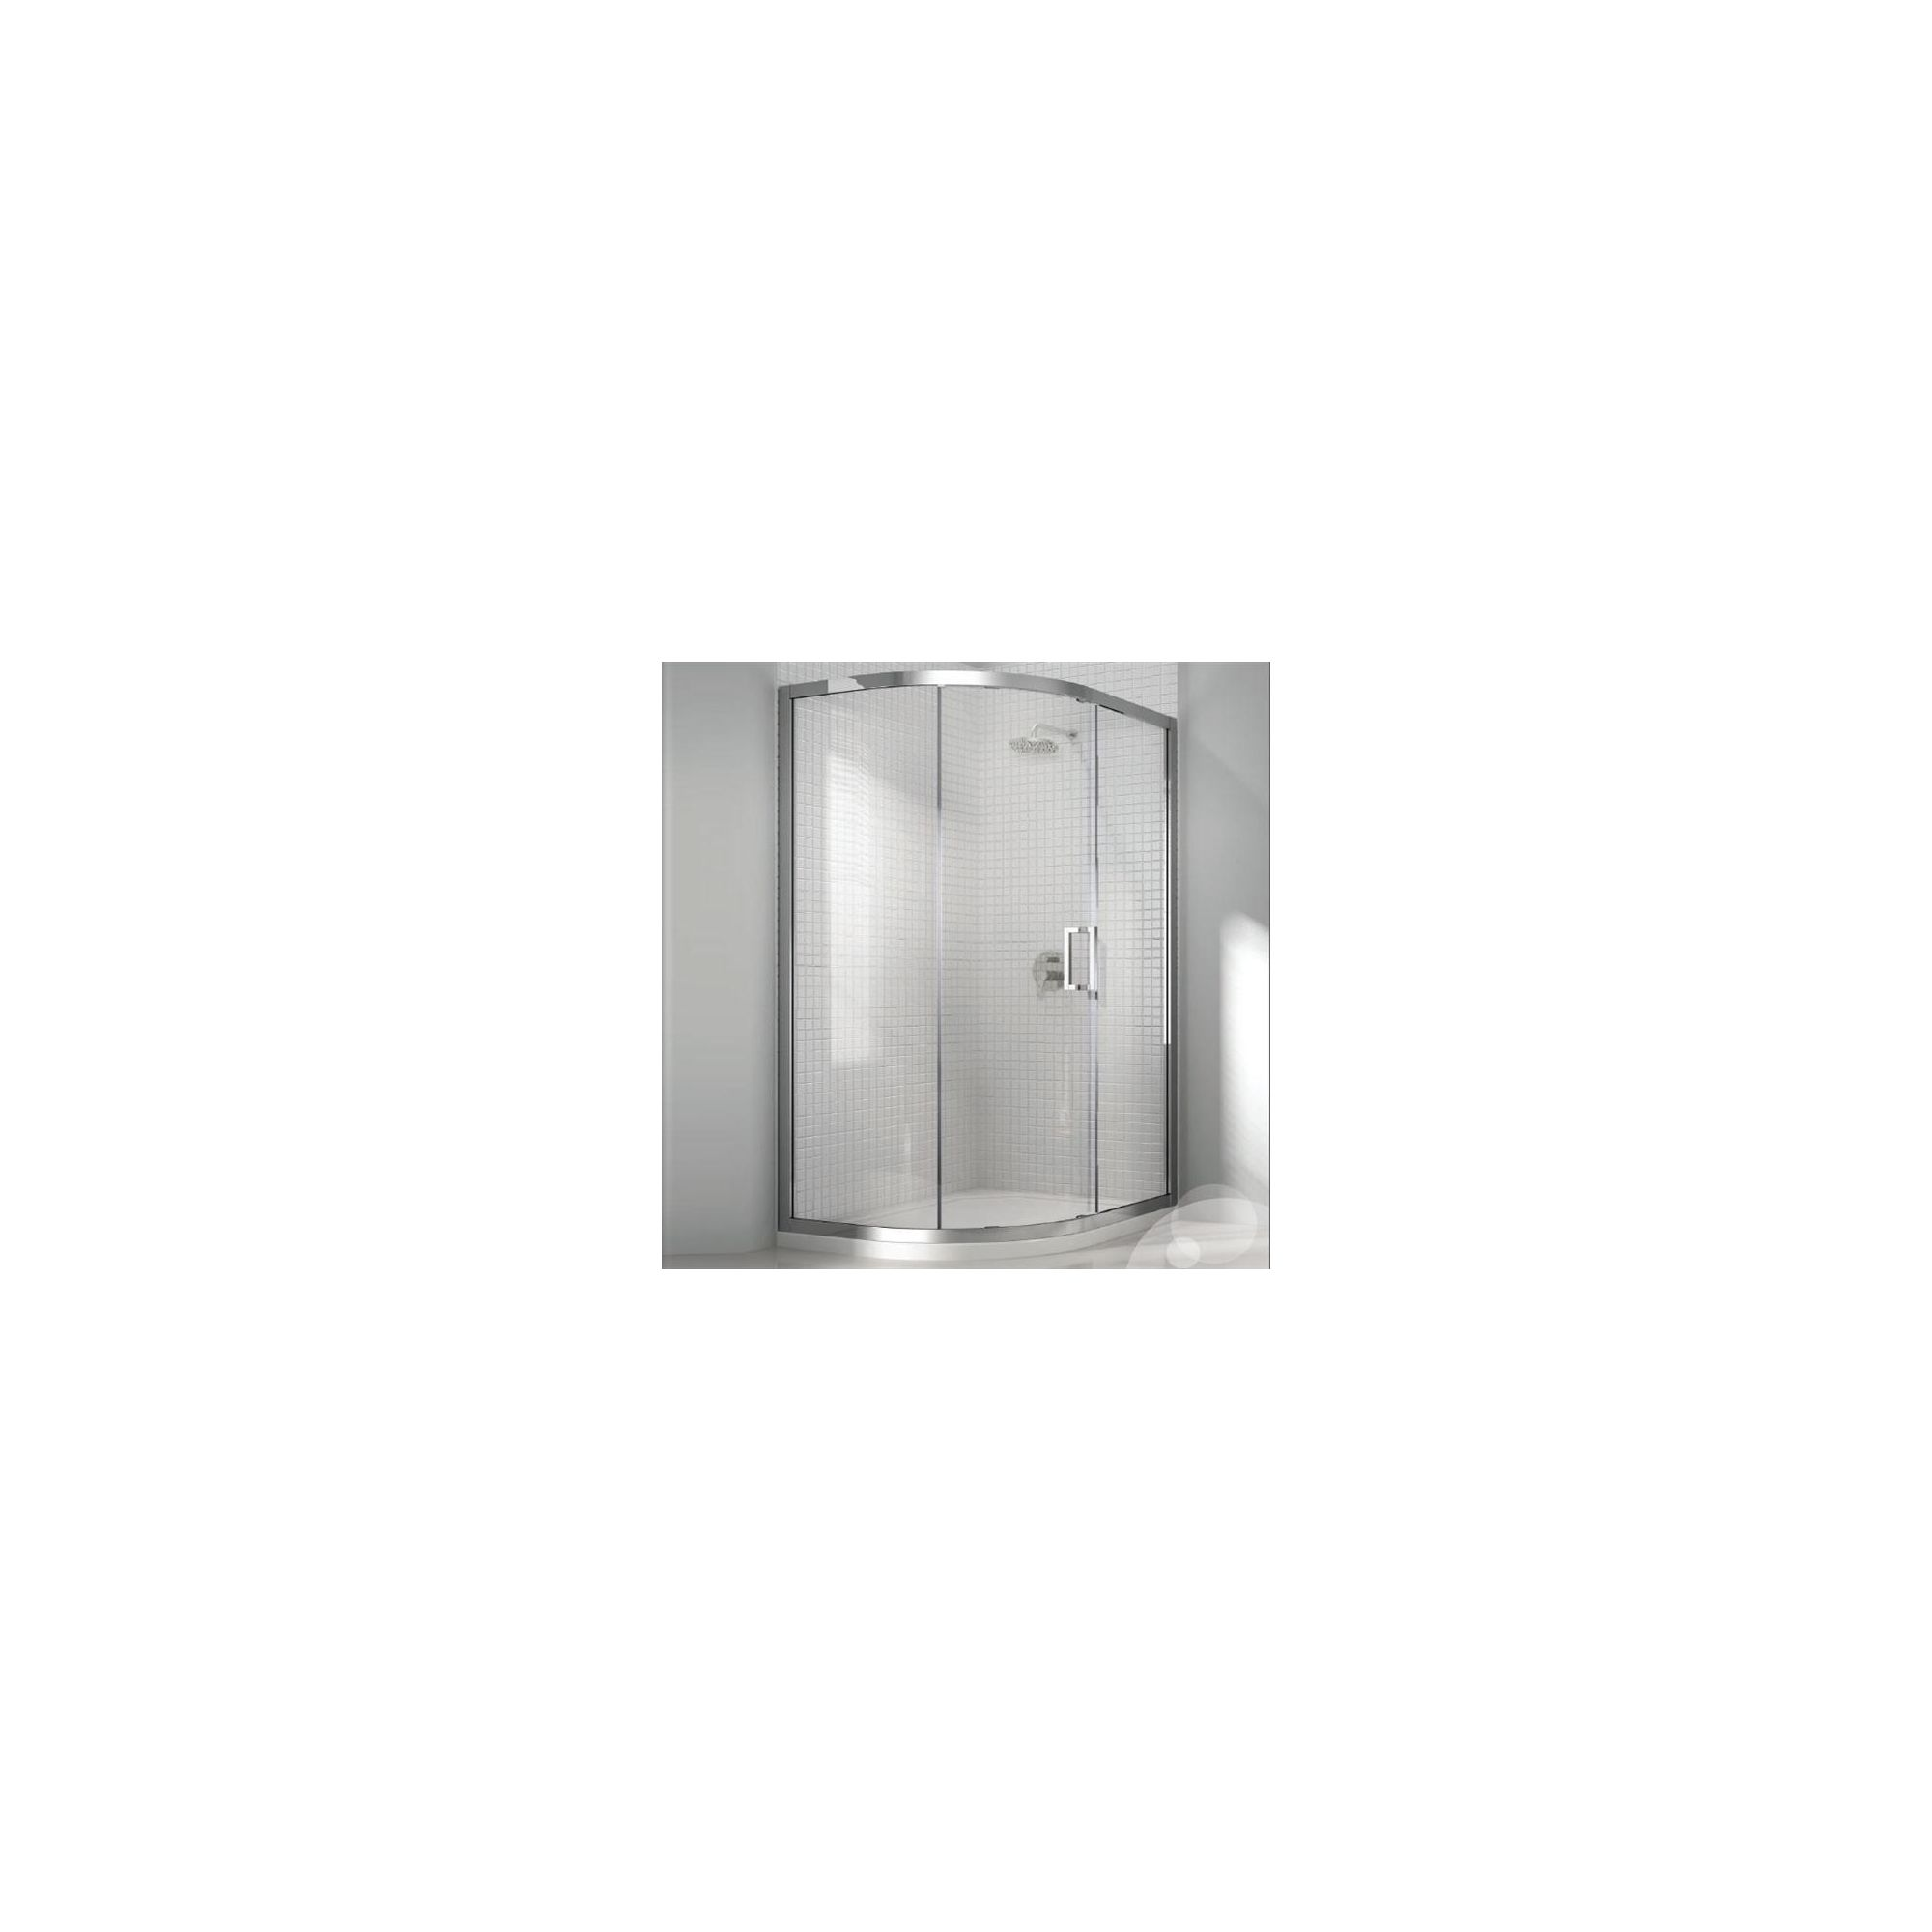 Merlyn Vivid Eight Offset Quadrant Shower Door, 1200mm x 800mm, 8mm Glass at Tesco Direct